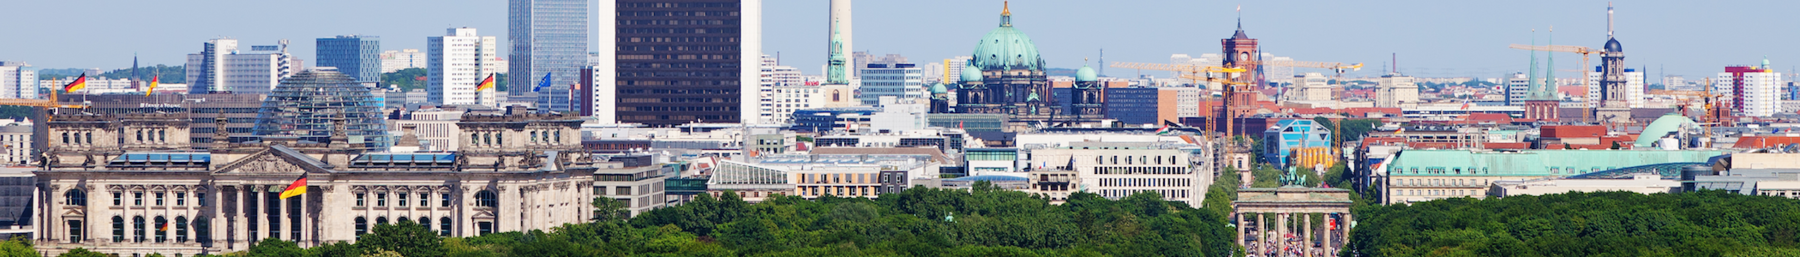 Berlin Mitte Wikivoyage Banner 2.png